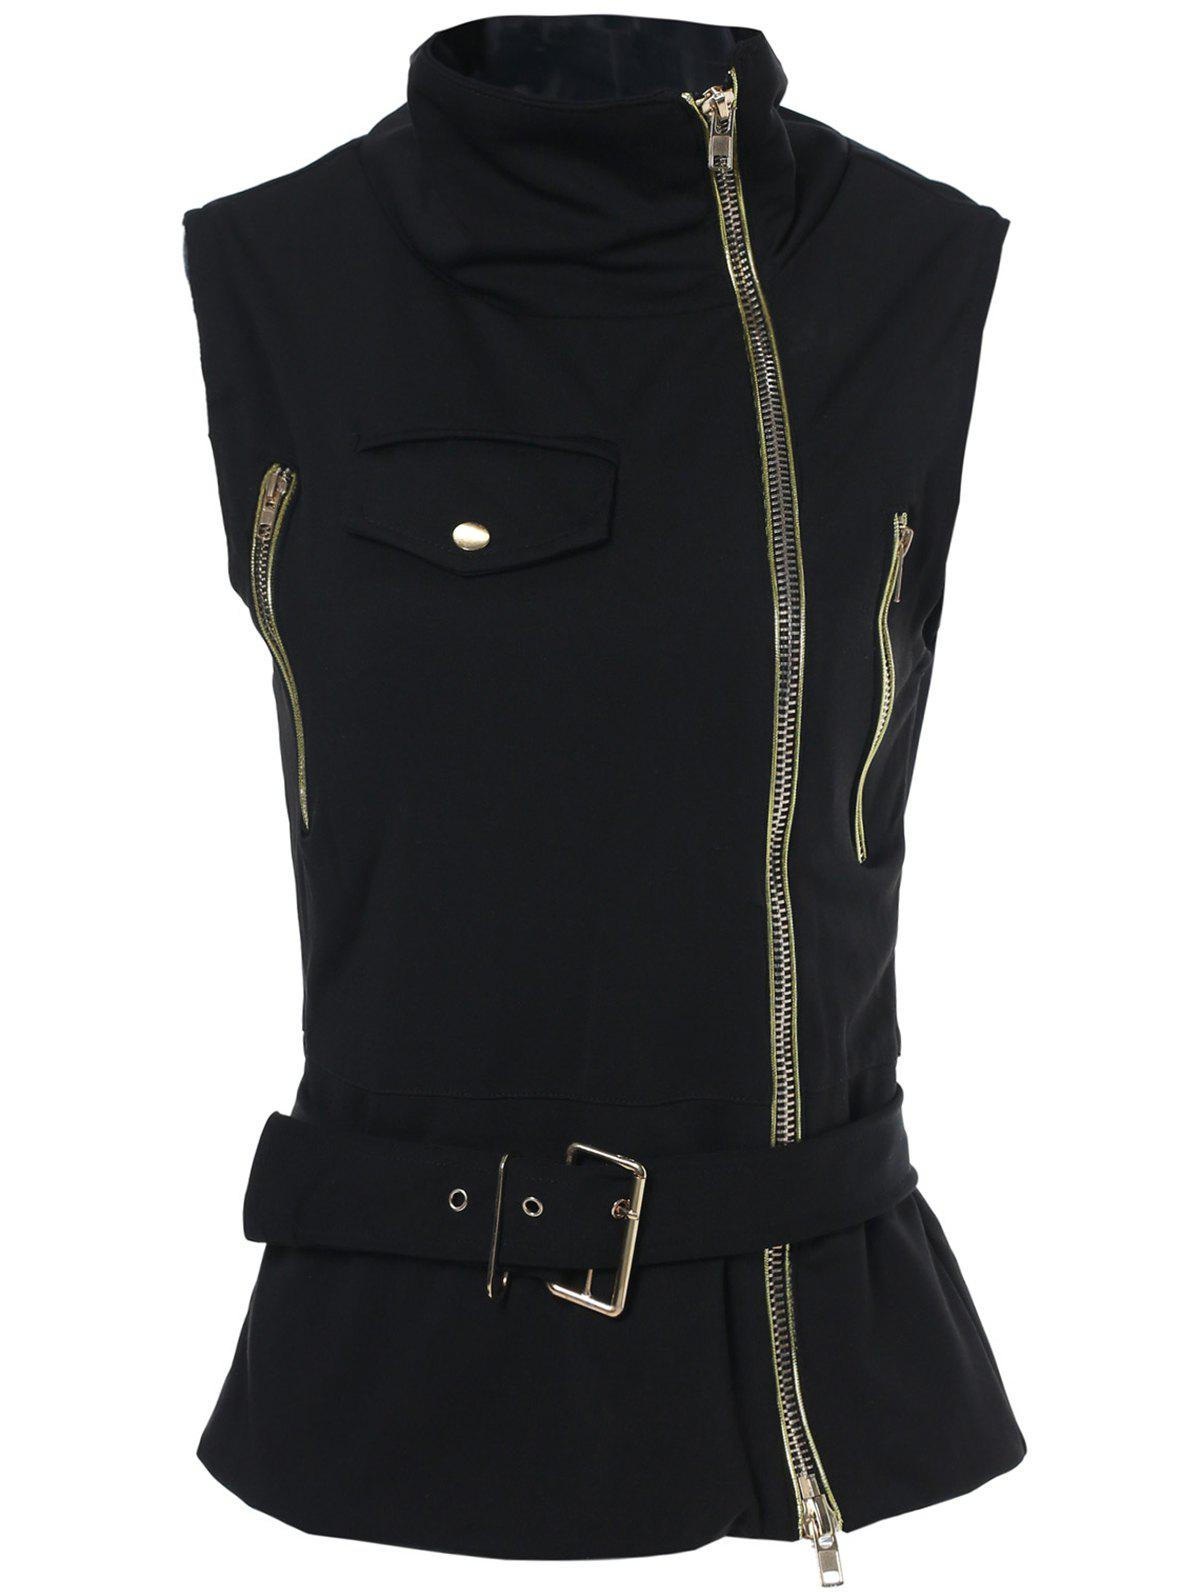 Stylish Sleeveless Stand-Up Collar Solid Color Zipper Embellished Women's Waistcoat - BLACK XL